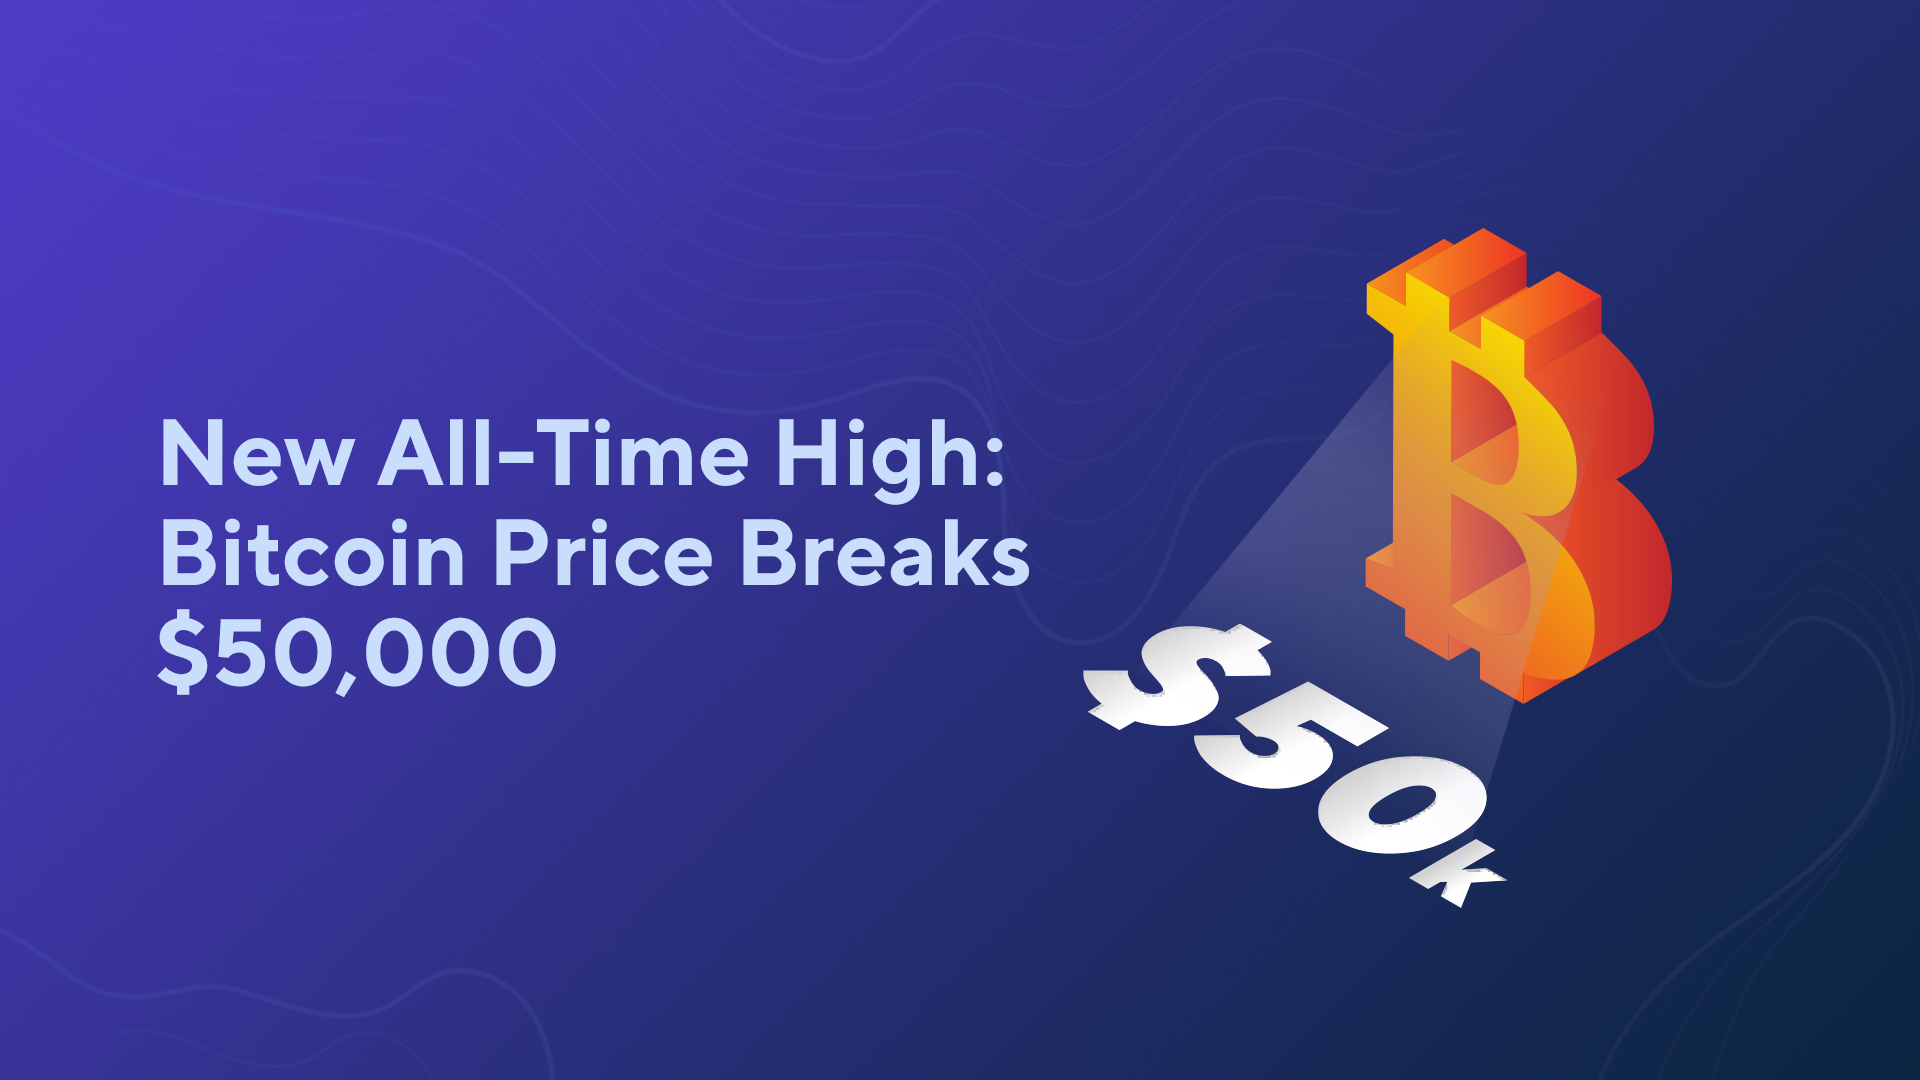 New All-Time High: Bitcoin Price Breaks $50,000